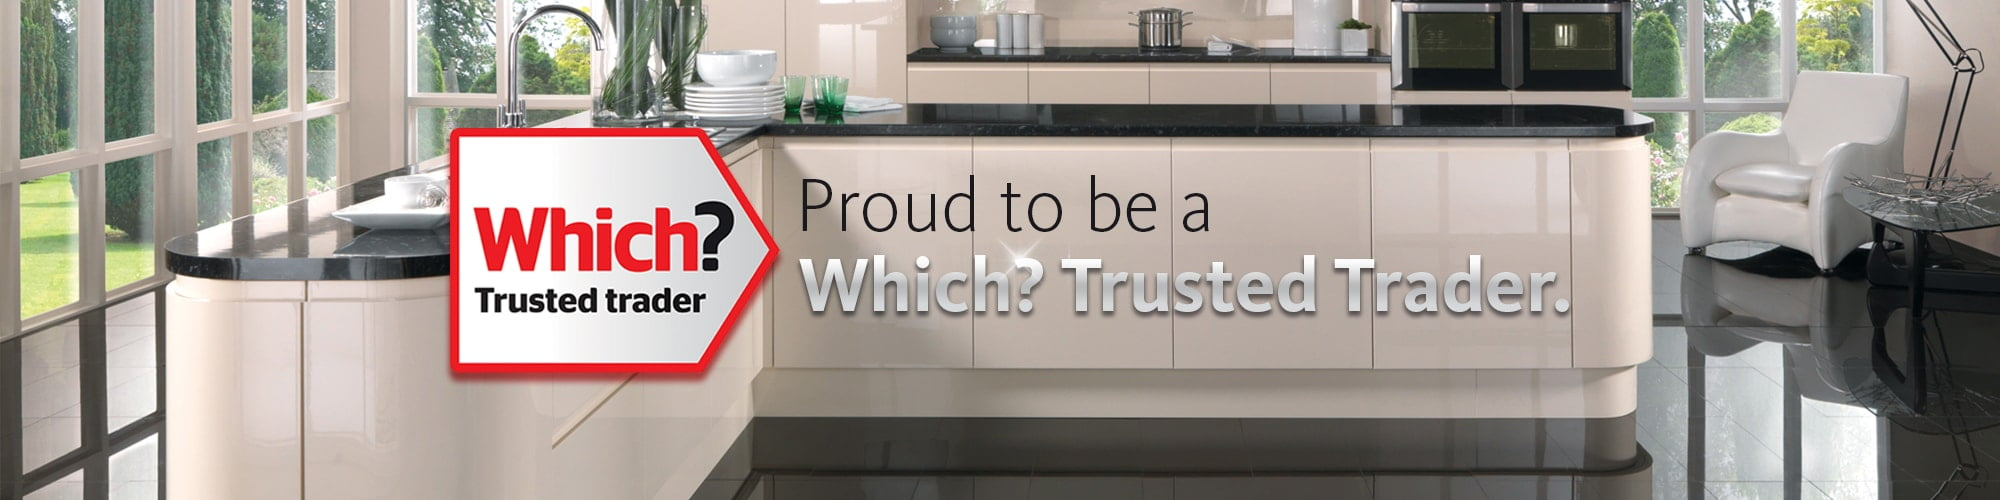 proud to be a which trusted trader